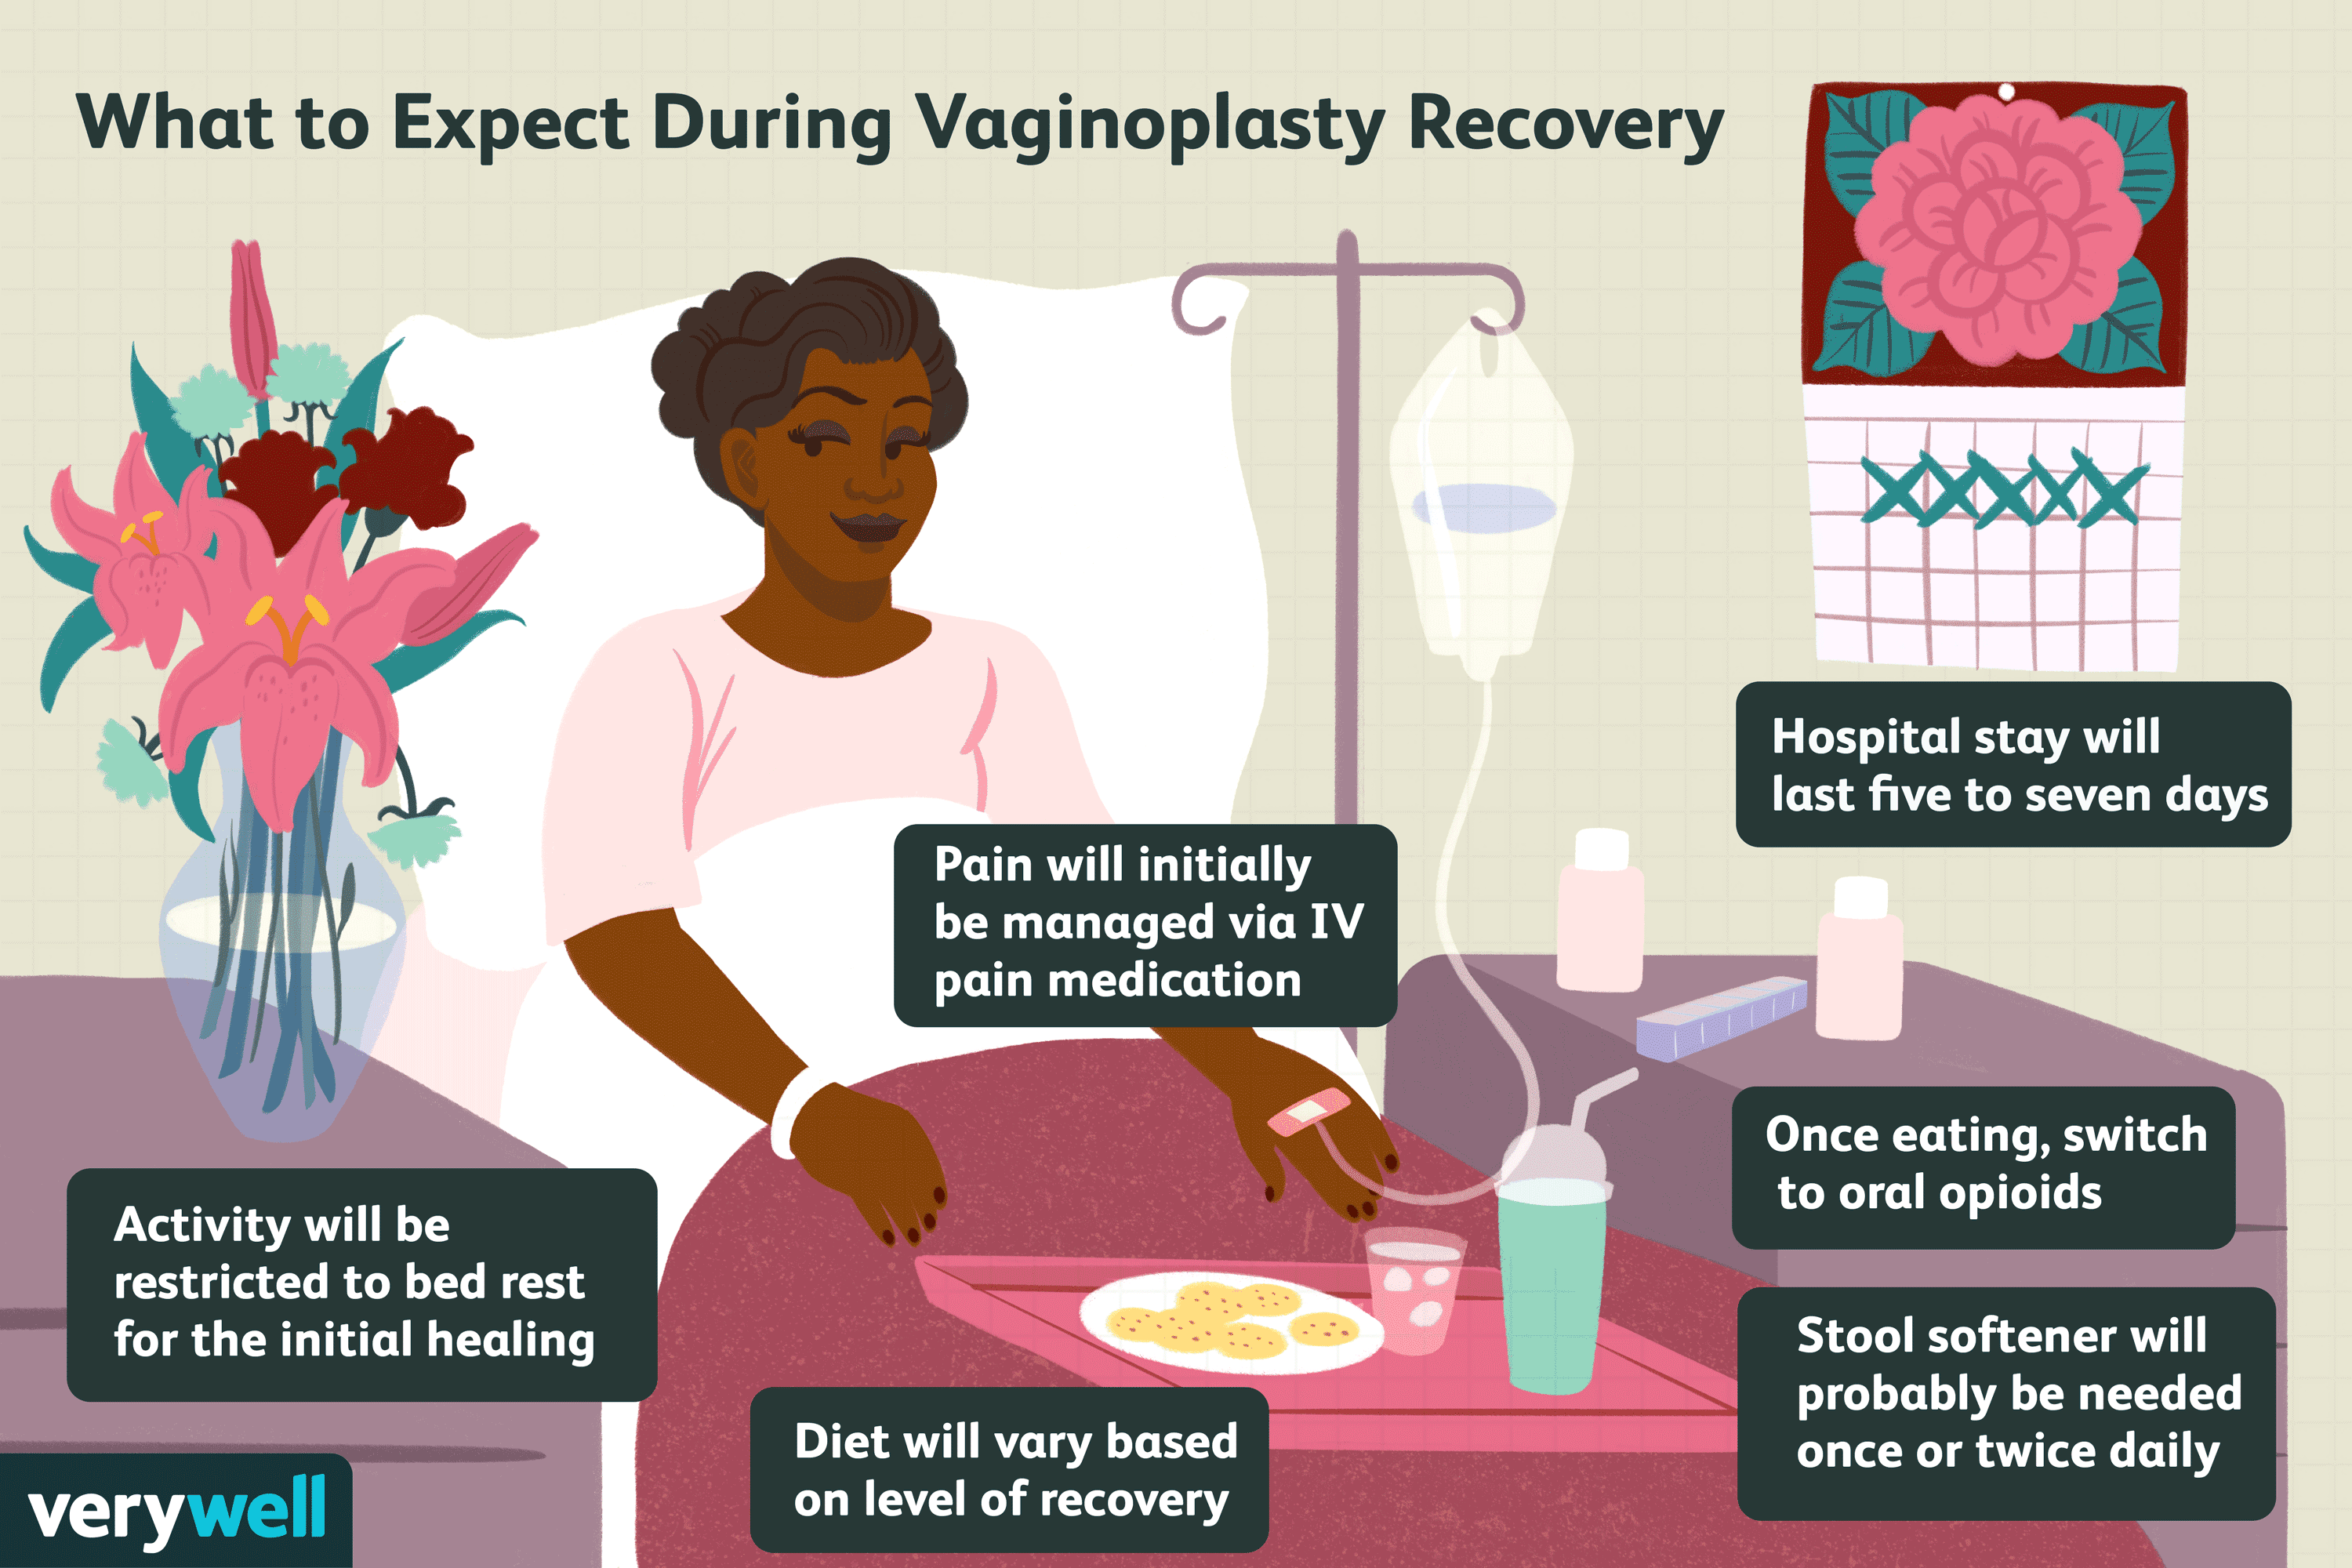 What to Expect During Vaginoplasty Recovery